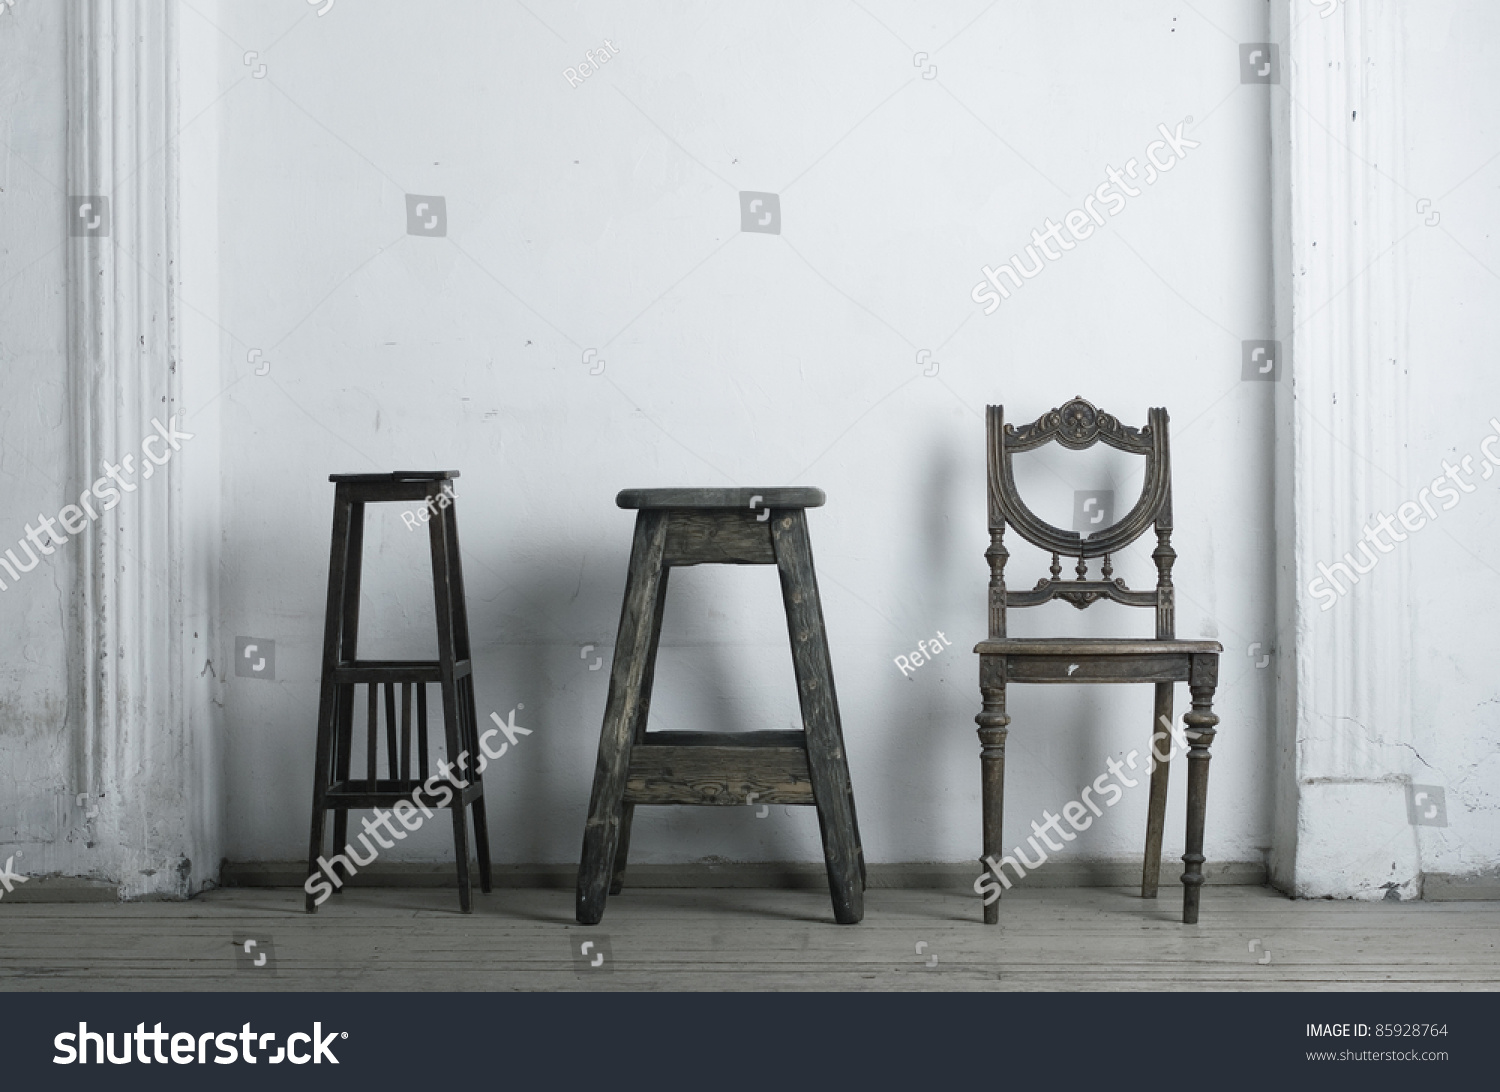 three retro chair against a white wall stock photo 85928764 shutterstock. Black Bedroom Furniture Sets. Home Design Ideas